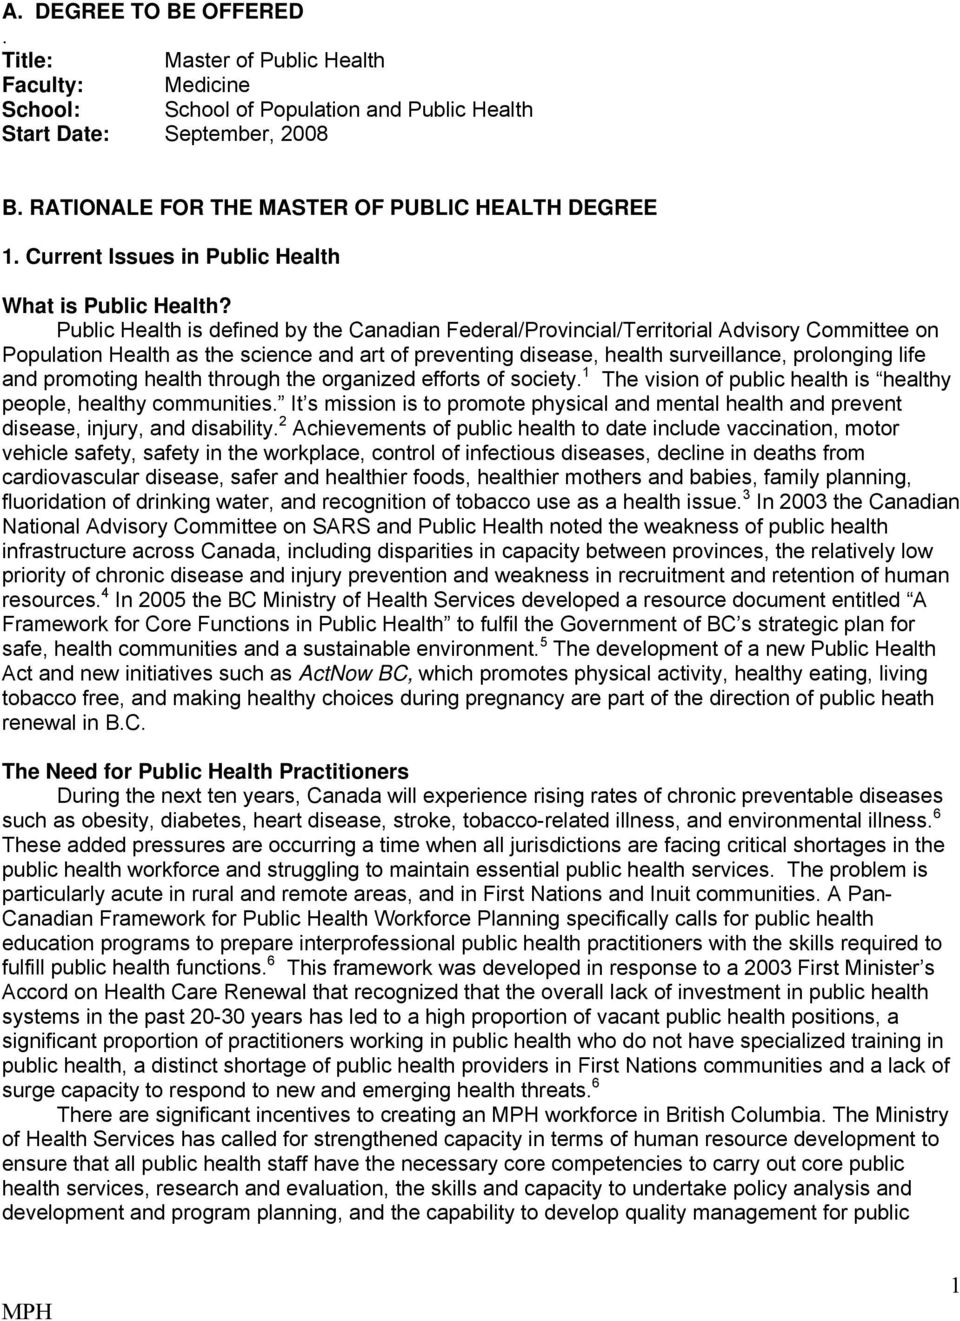 Public Health is defined by the Canadian Federal/Provincial/Territorial Advisory Committee on Population Health as the science and art of preventing disease, health surveillance, prolonging life and